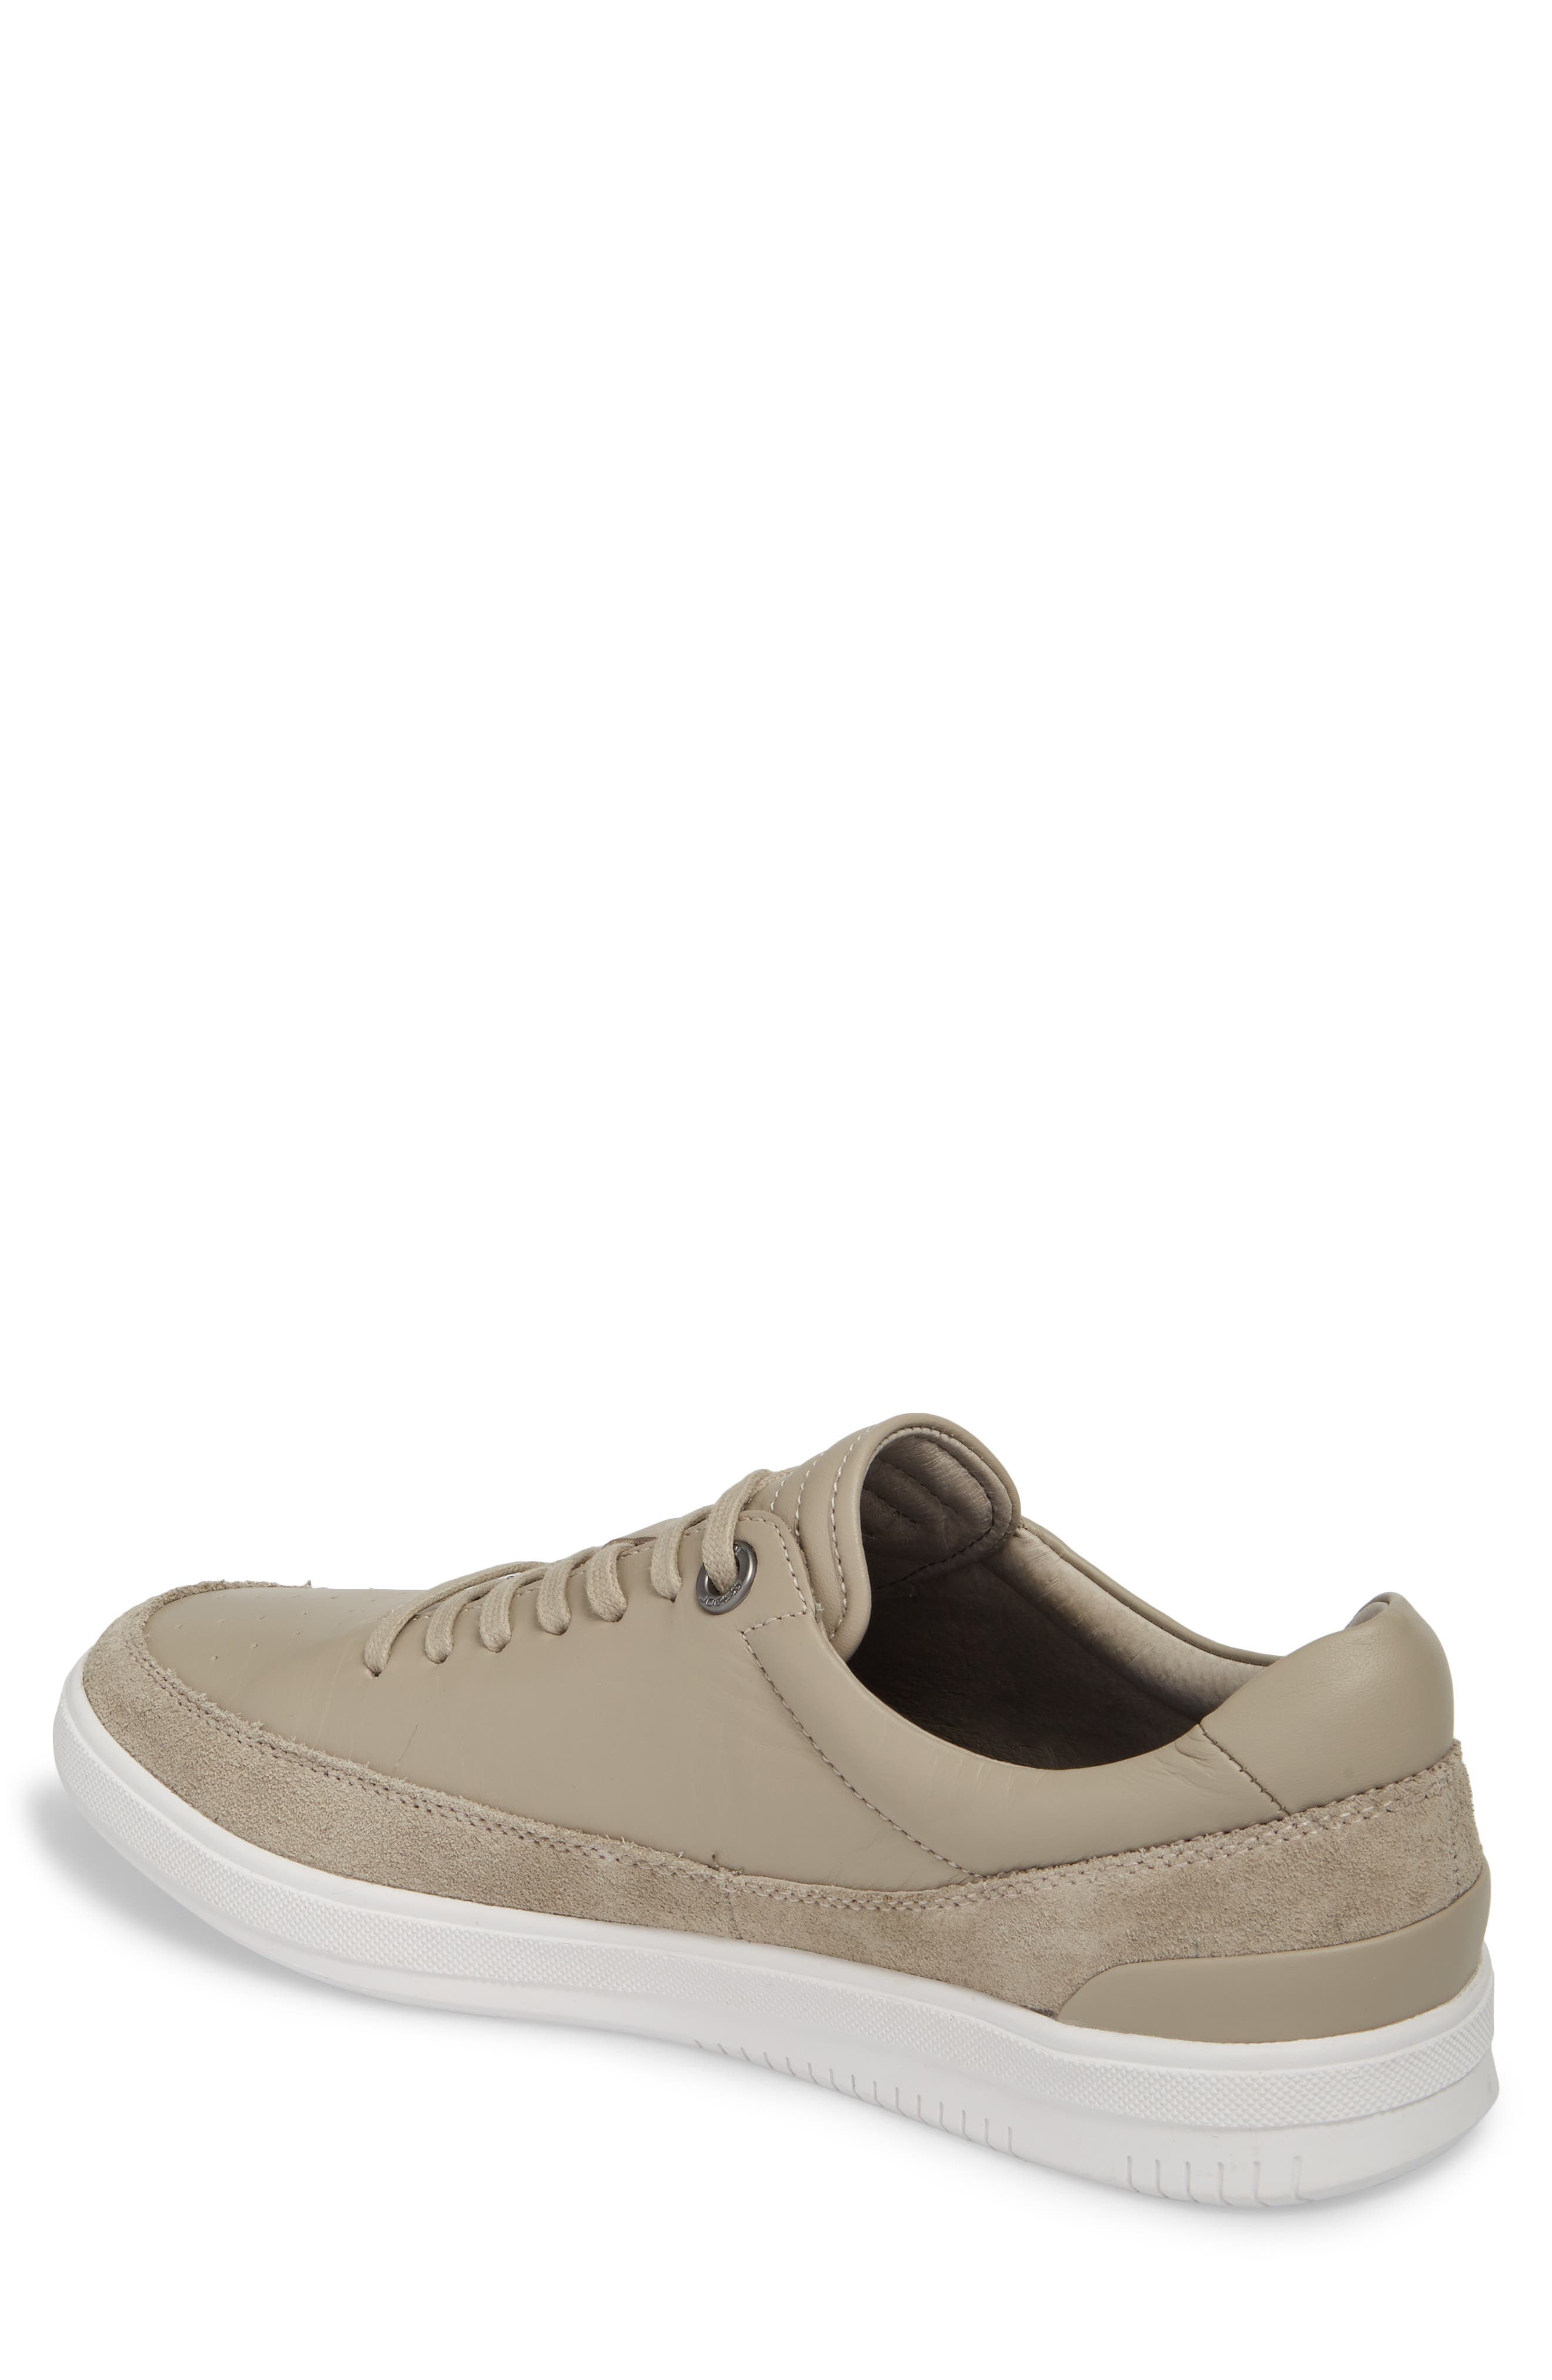 Joe Classic Low Top Sneaker,                             Alternate thumbnail 2, color,                             STONE LEATHER